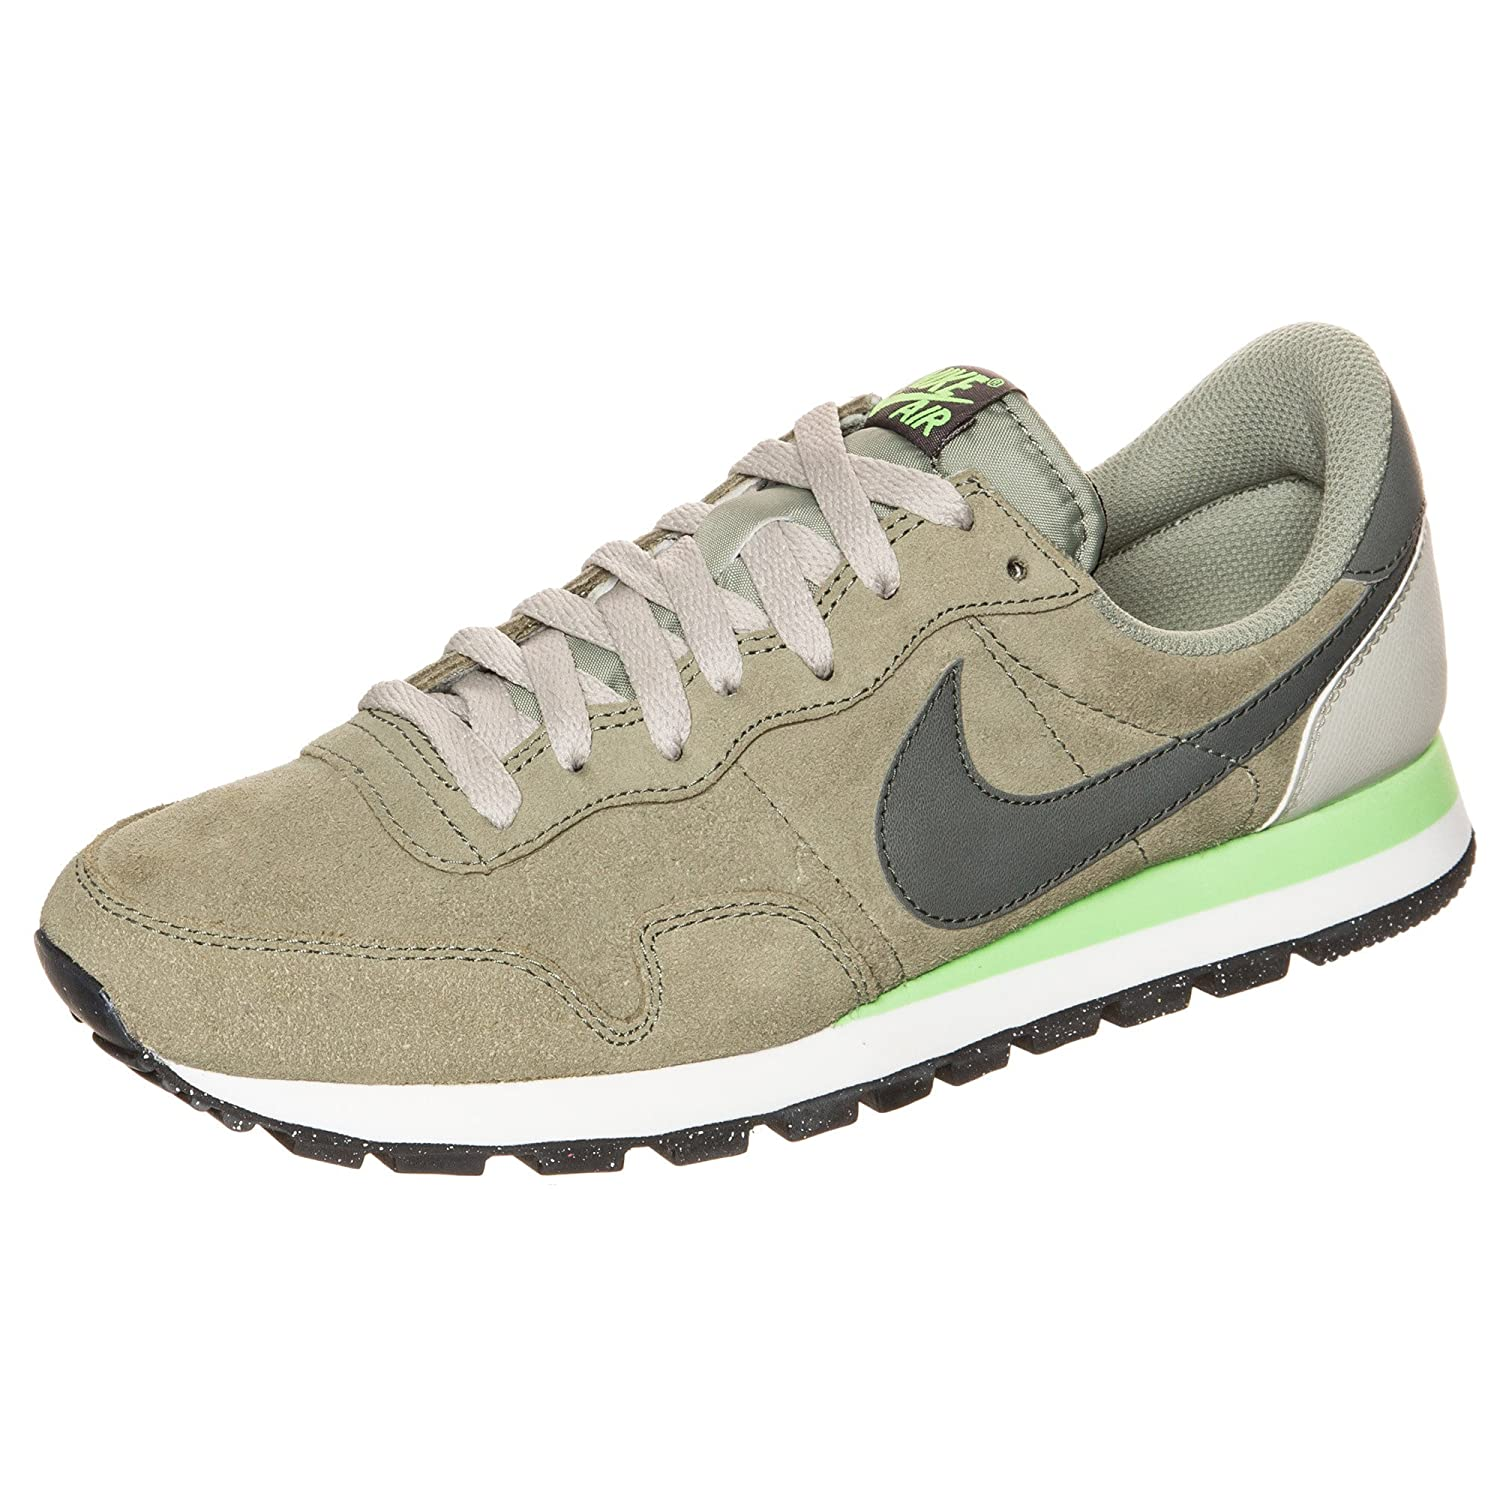 on sale 5940d 4639c Nike Women W NSW WR Jacket - Cyber White Vast Grey, Medium  Amazon.co.uk   Shoes   Bags